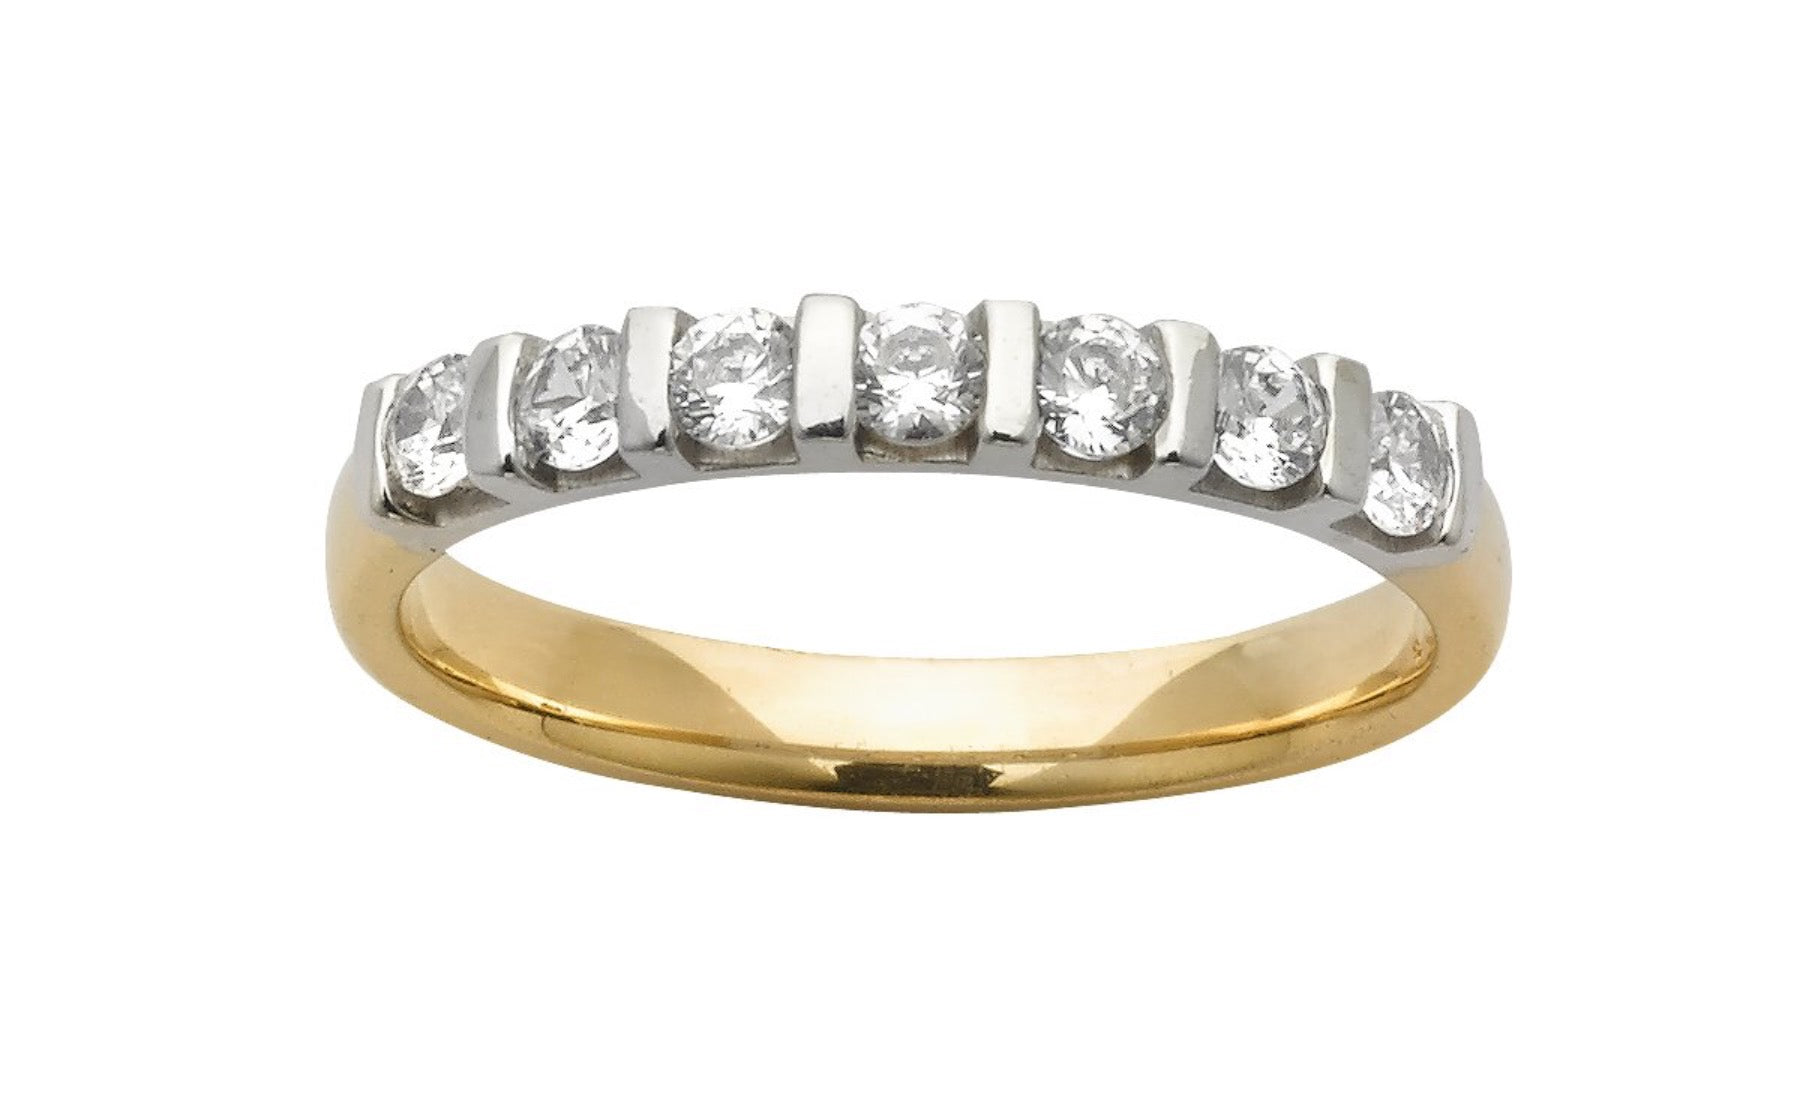 Ladies two tone wedding ring handset with ethical diamonds.  Made in new zealand.